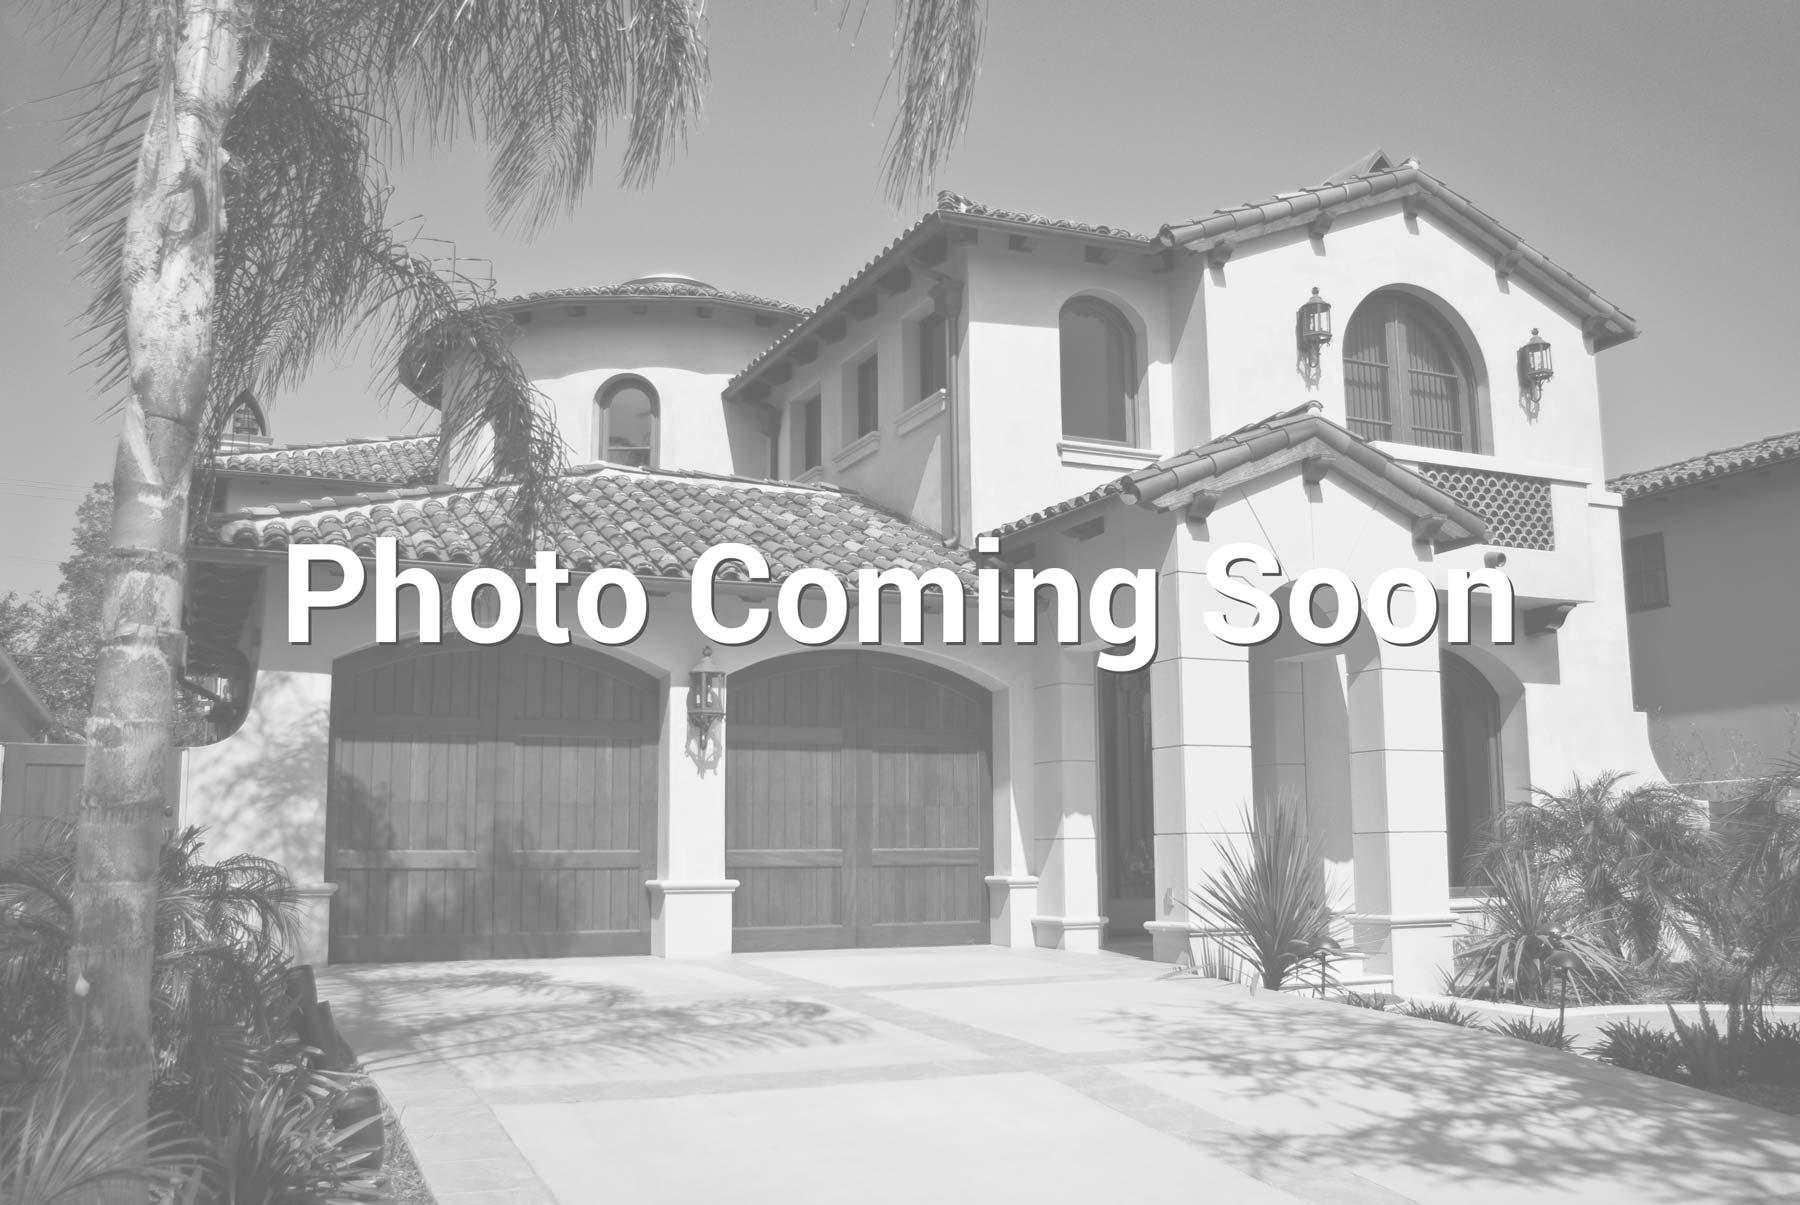 $550,000 - 3Br/3Ba - Home for Sale in Fountain Hills Arizona No. 505-d, Fountain Hills